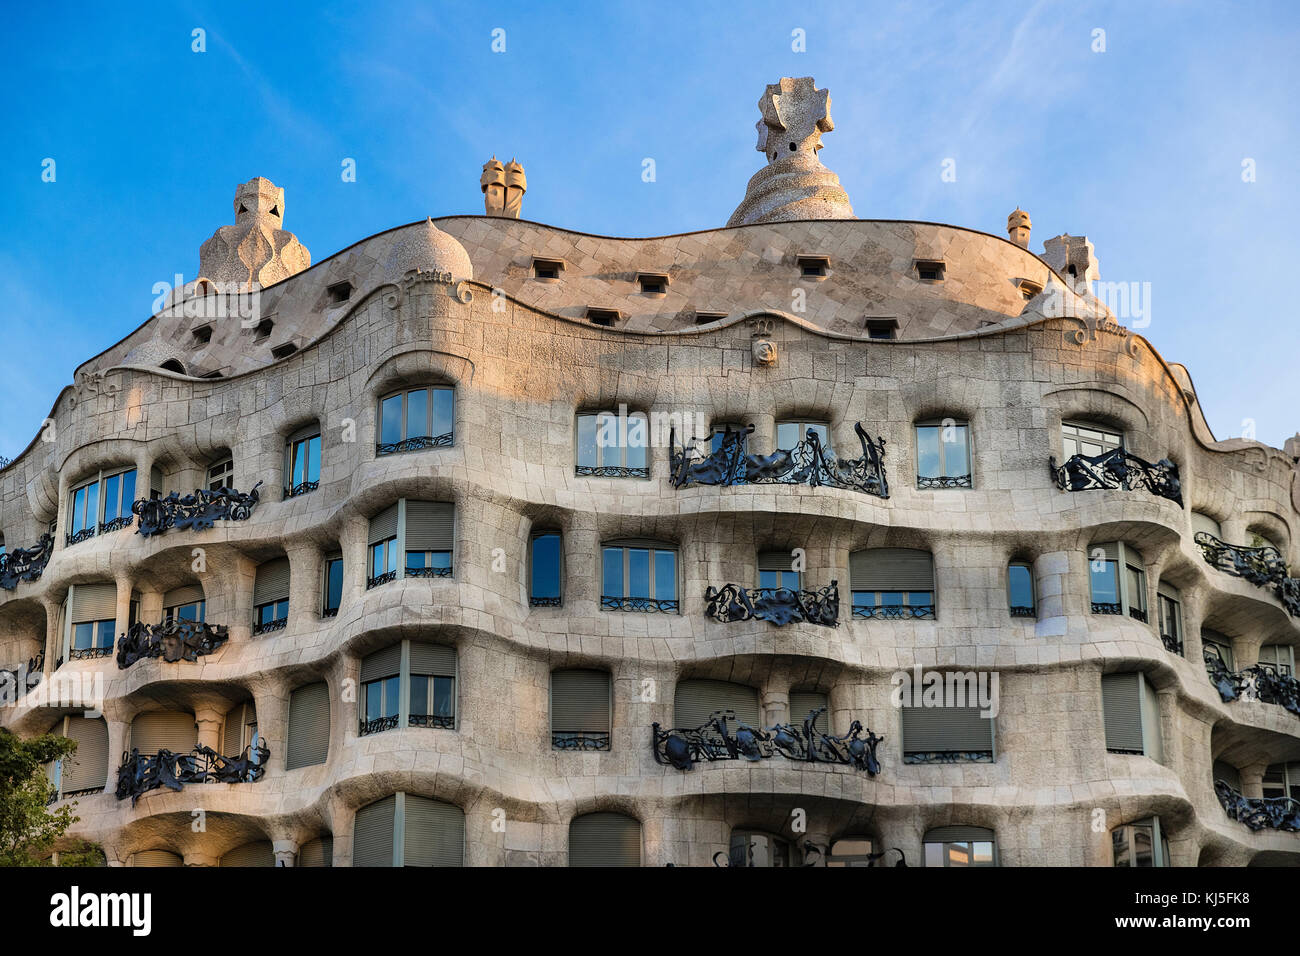 La Pedrera, Casa Milà house designed by Antonio Gaudi, Barcelona, Spain. - Stock Image